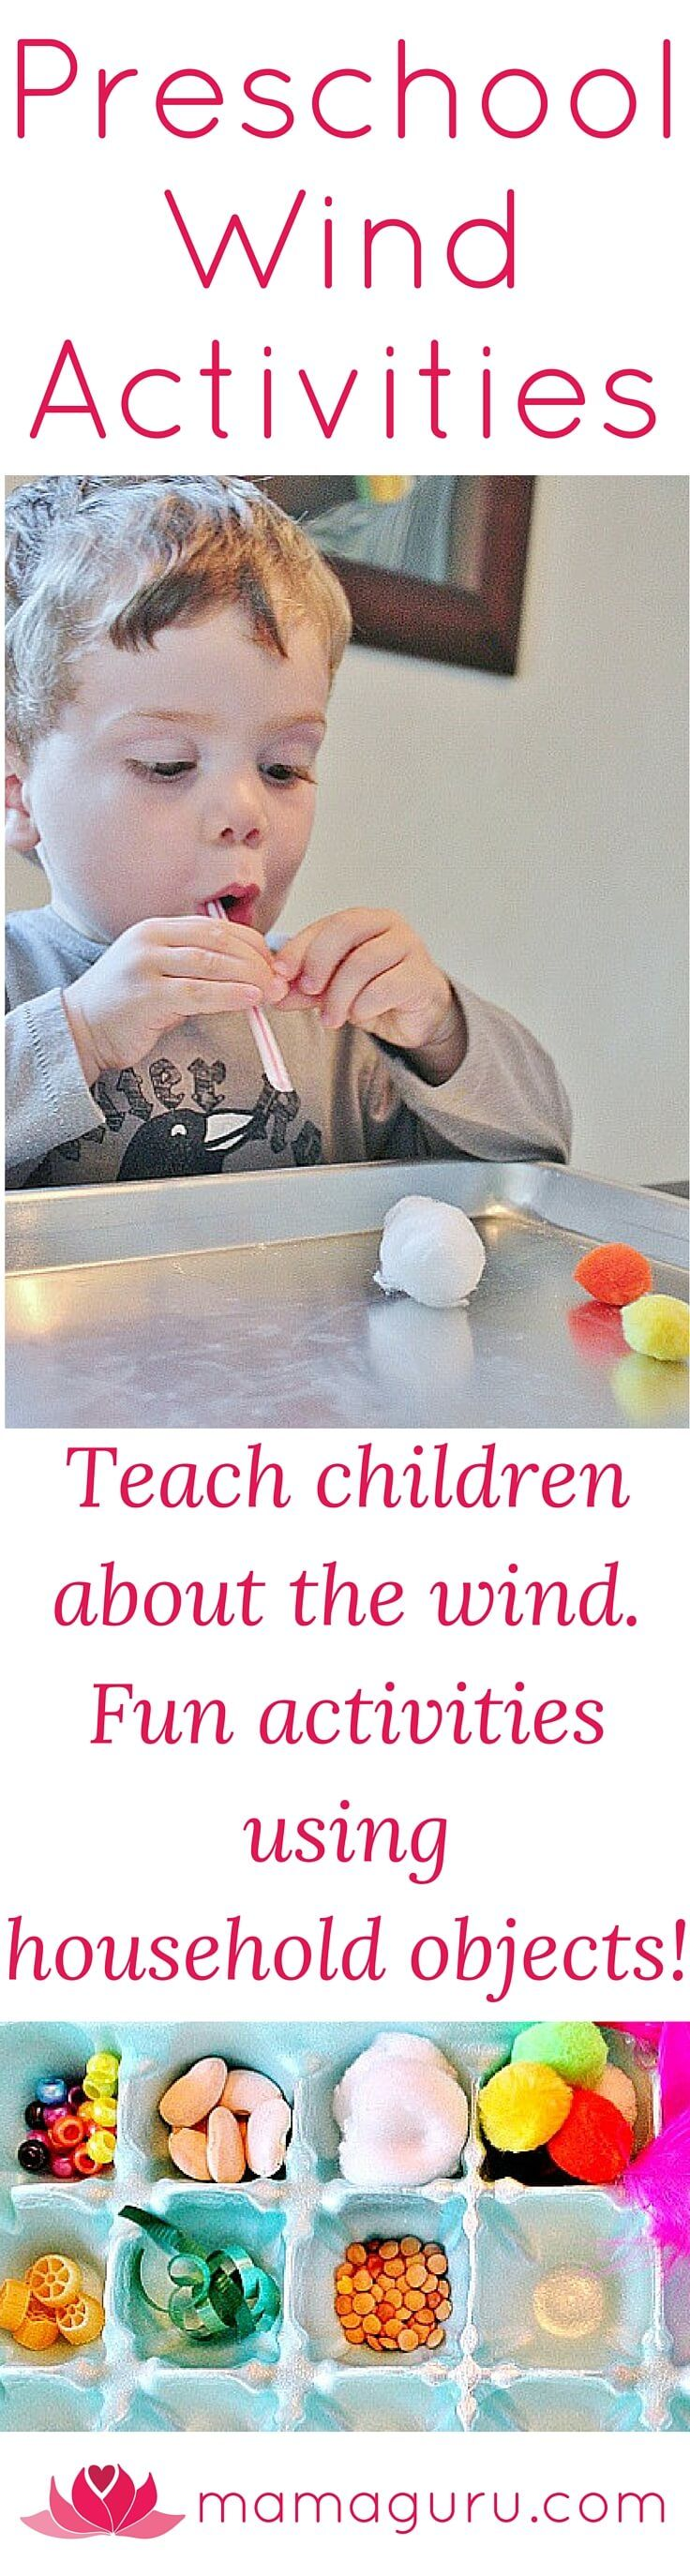 Preschool Wind Activities Using Household Objects